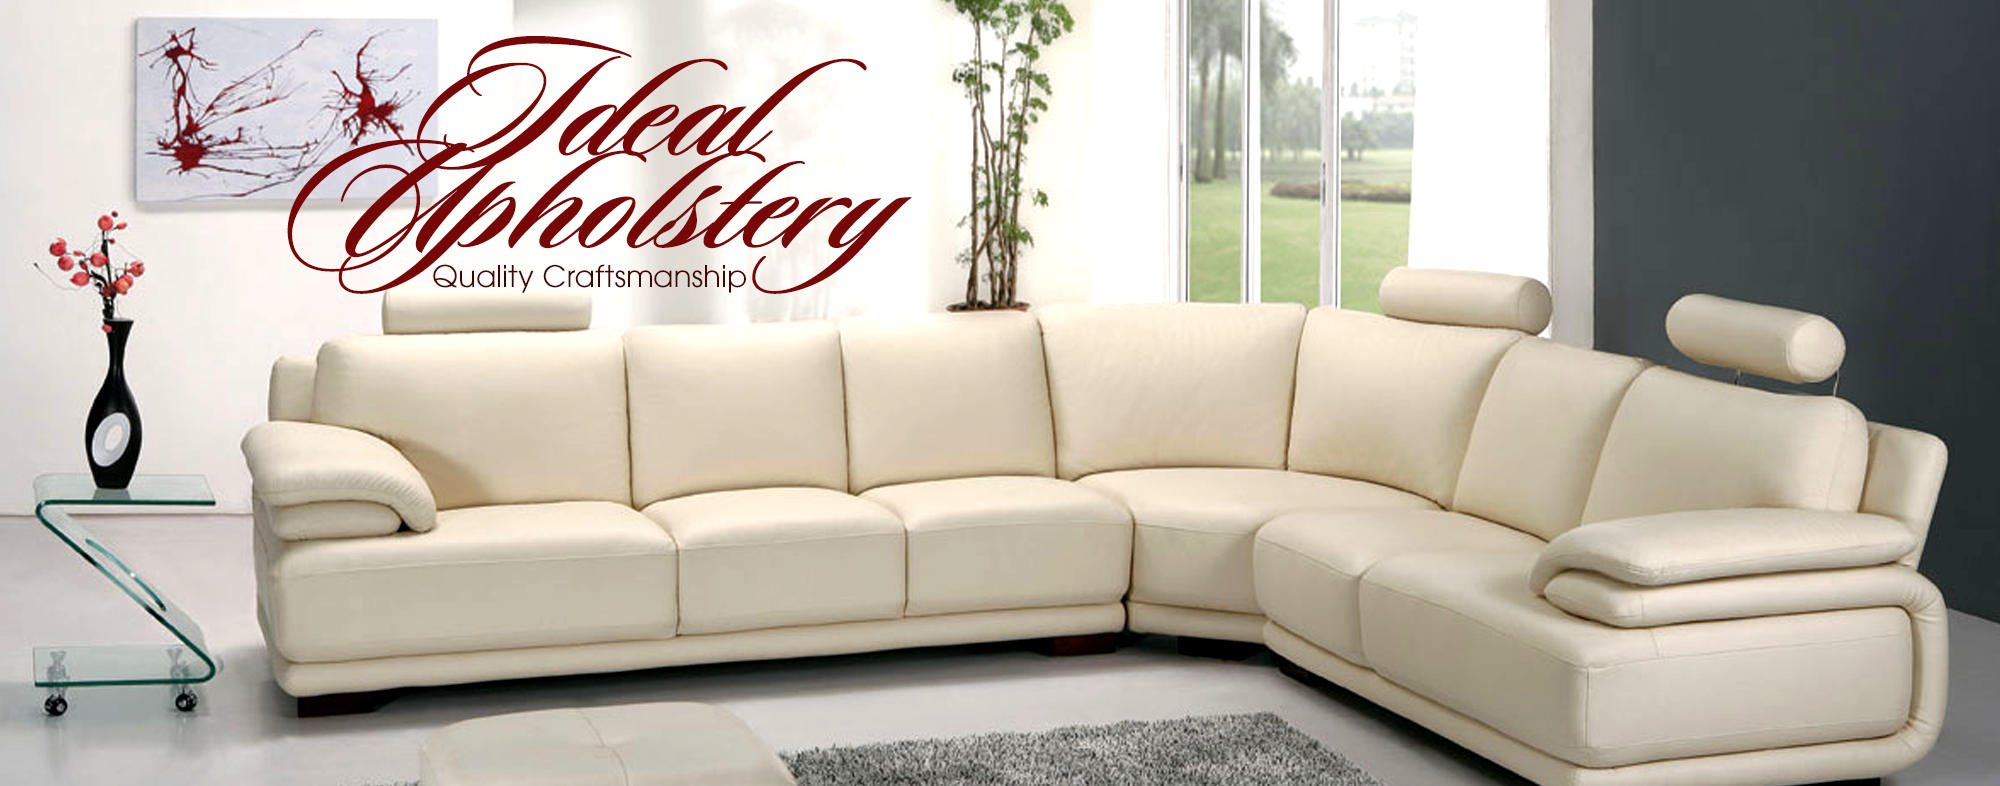 Ideal Upholstery